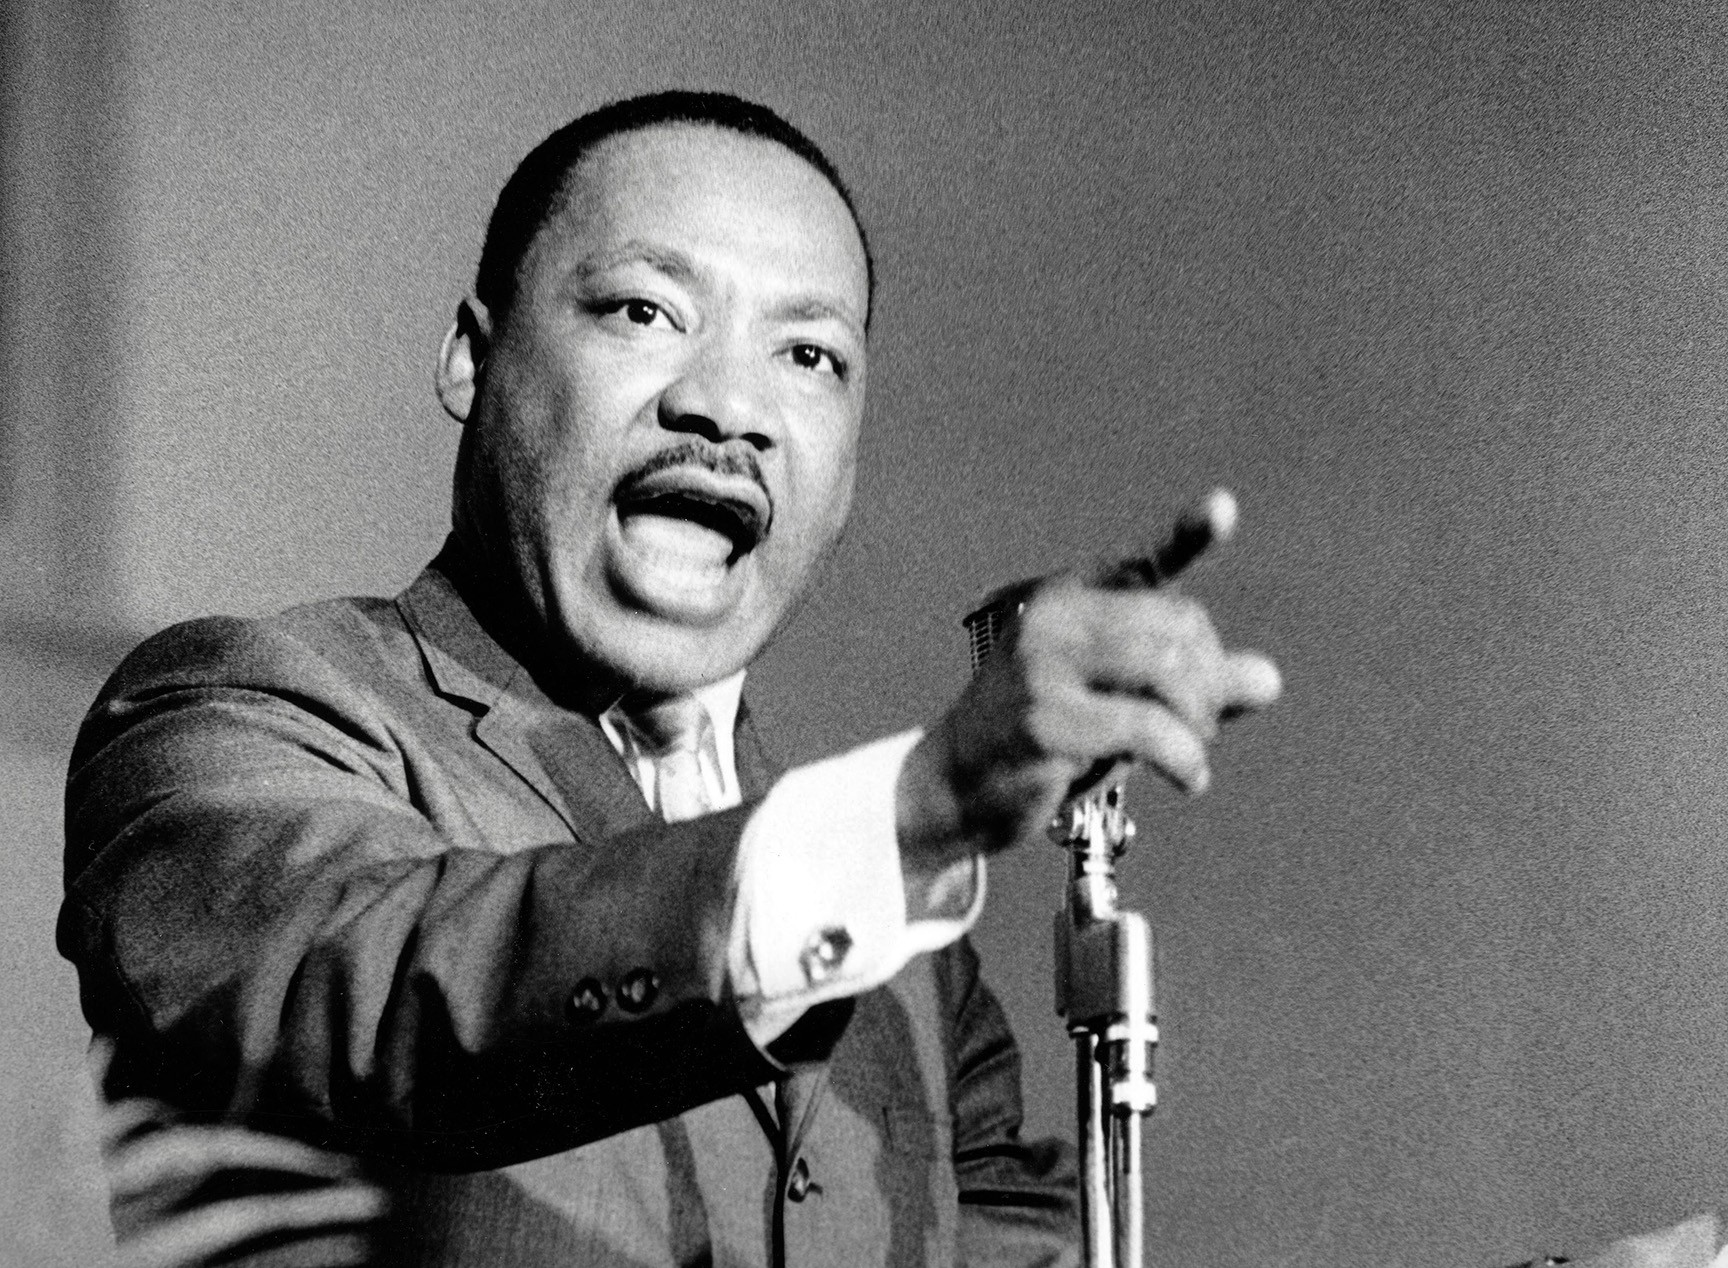 Martin Luther King, Jr. quot;s - Brainyquot